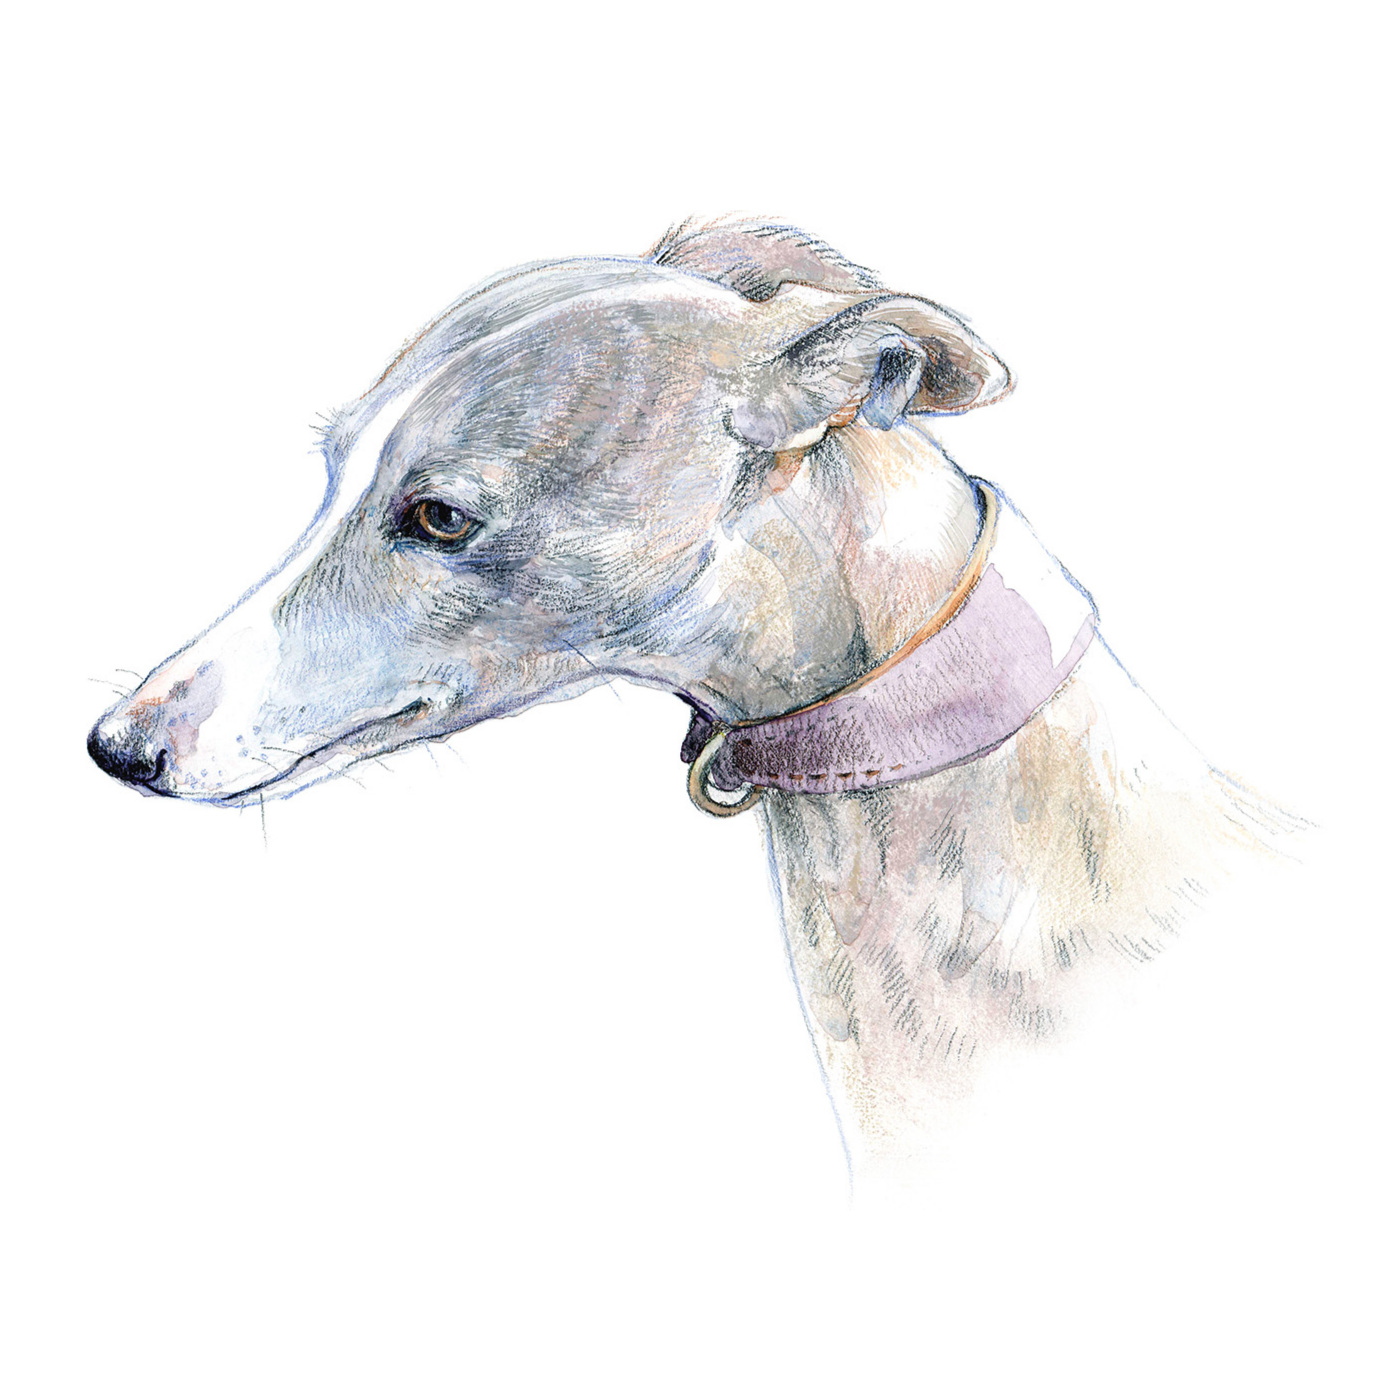 Gentle and patient. A whippet portrait